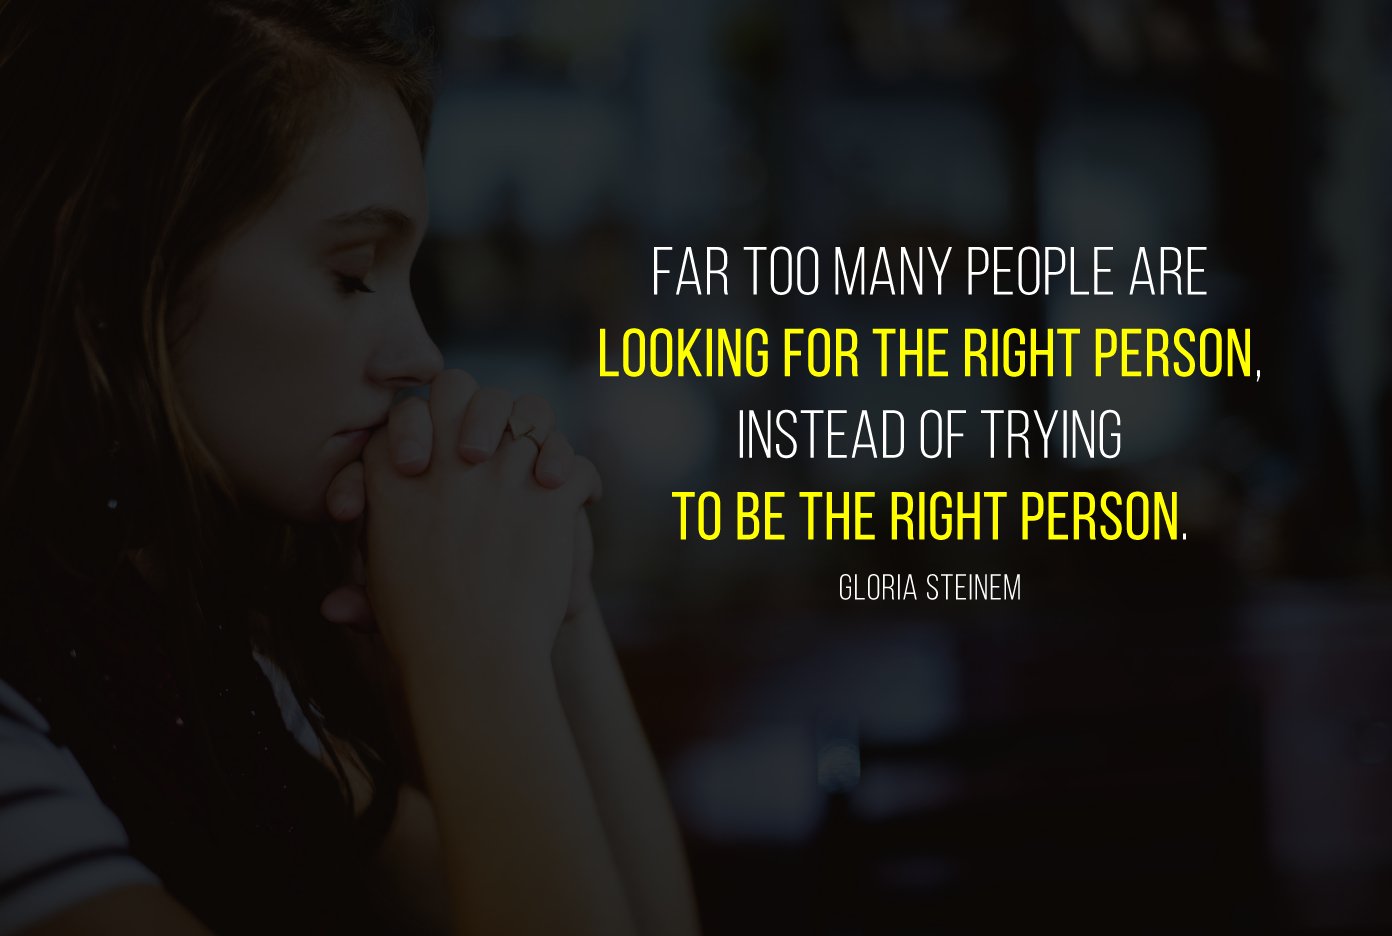 Far too many people are looking for the right person, instead of trying to be the right person. Gloria Steinem